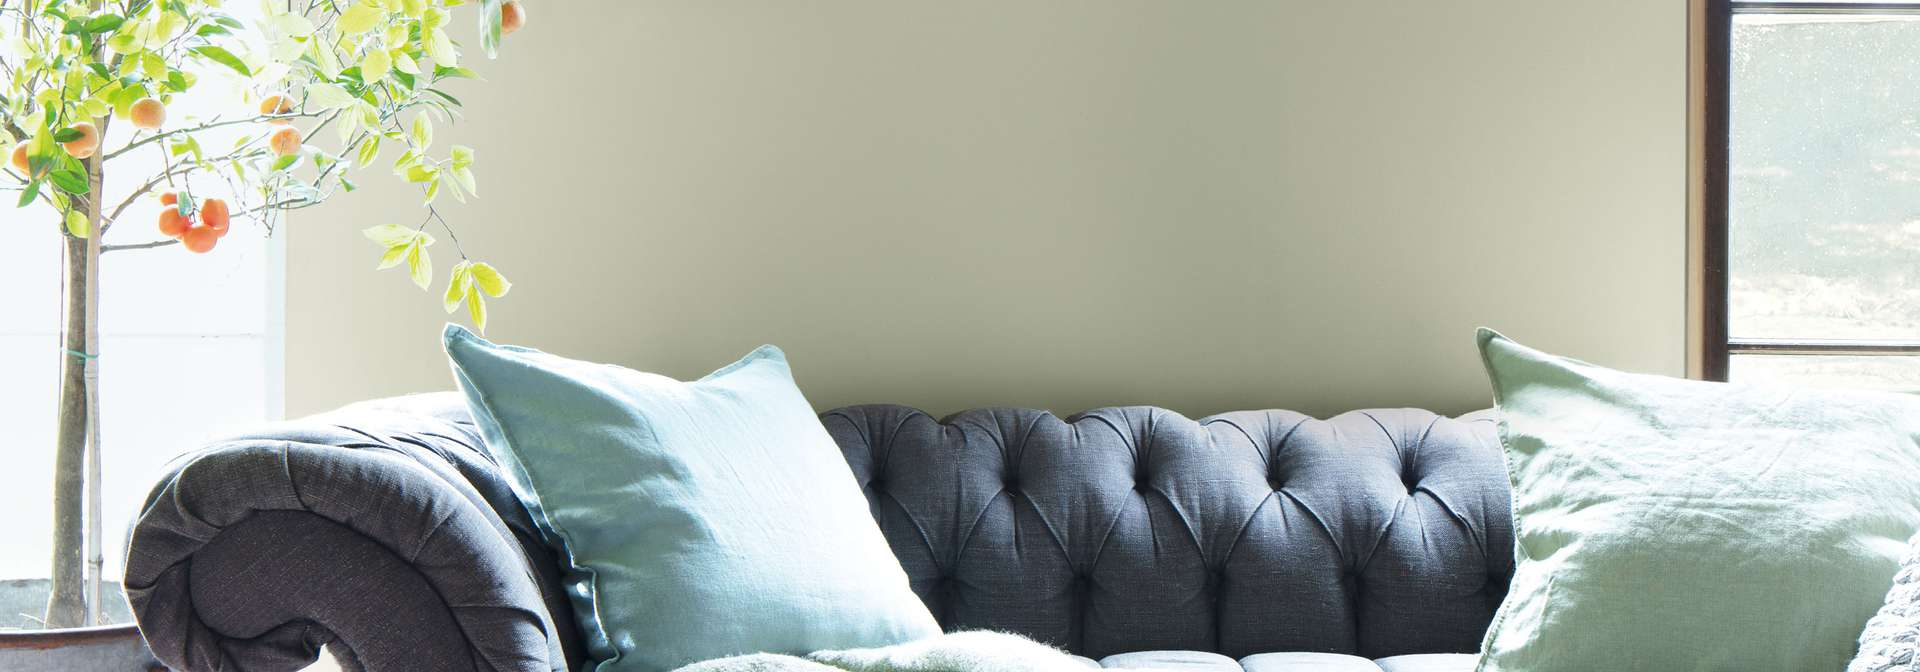 Benjamin Moore Color of the Year 2022 October Mist in living room